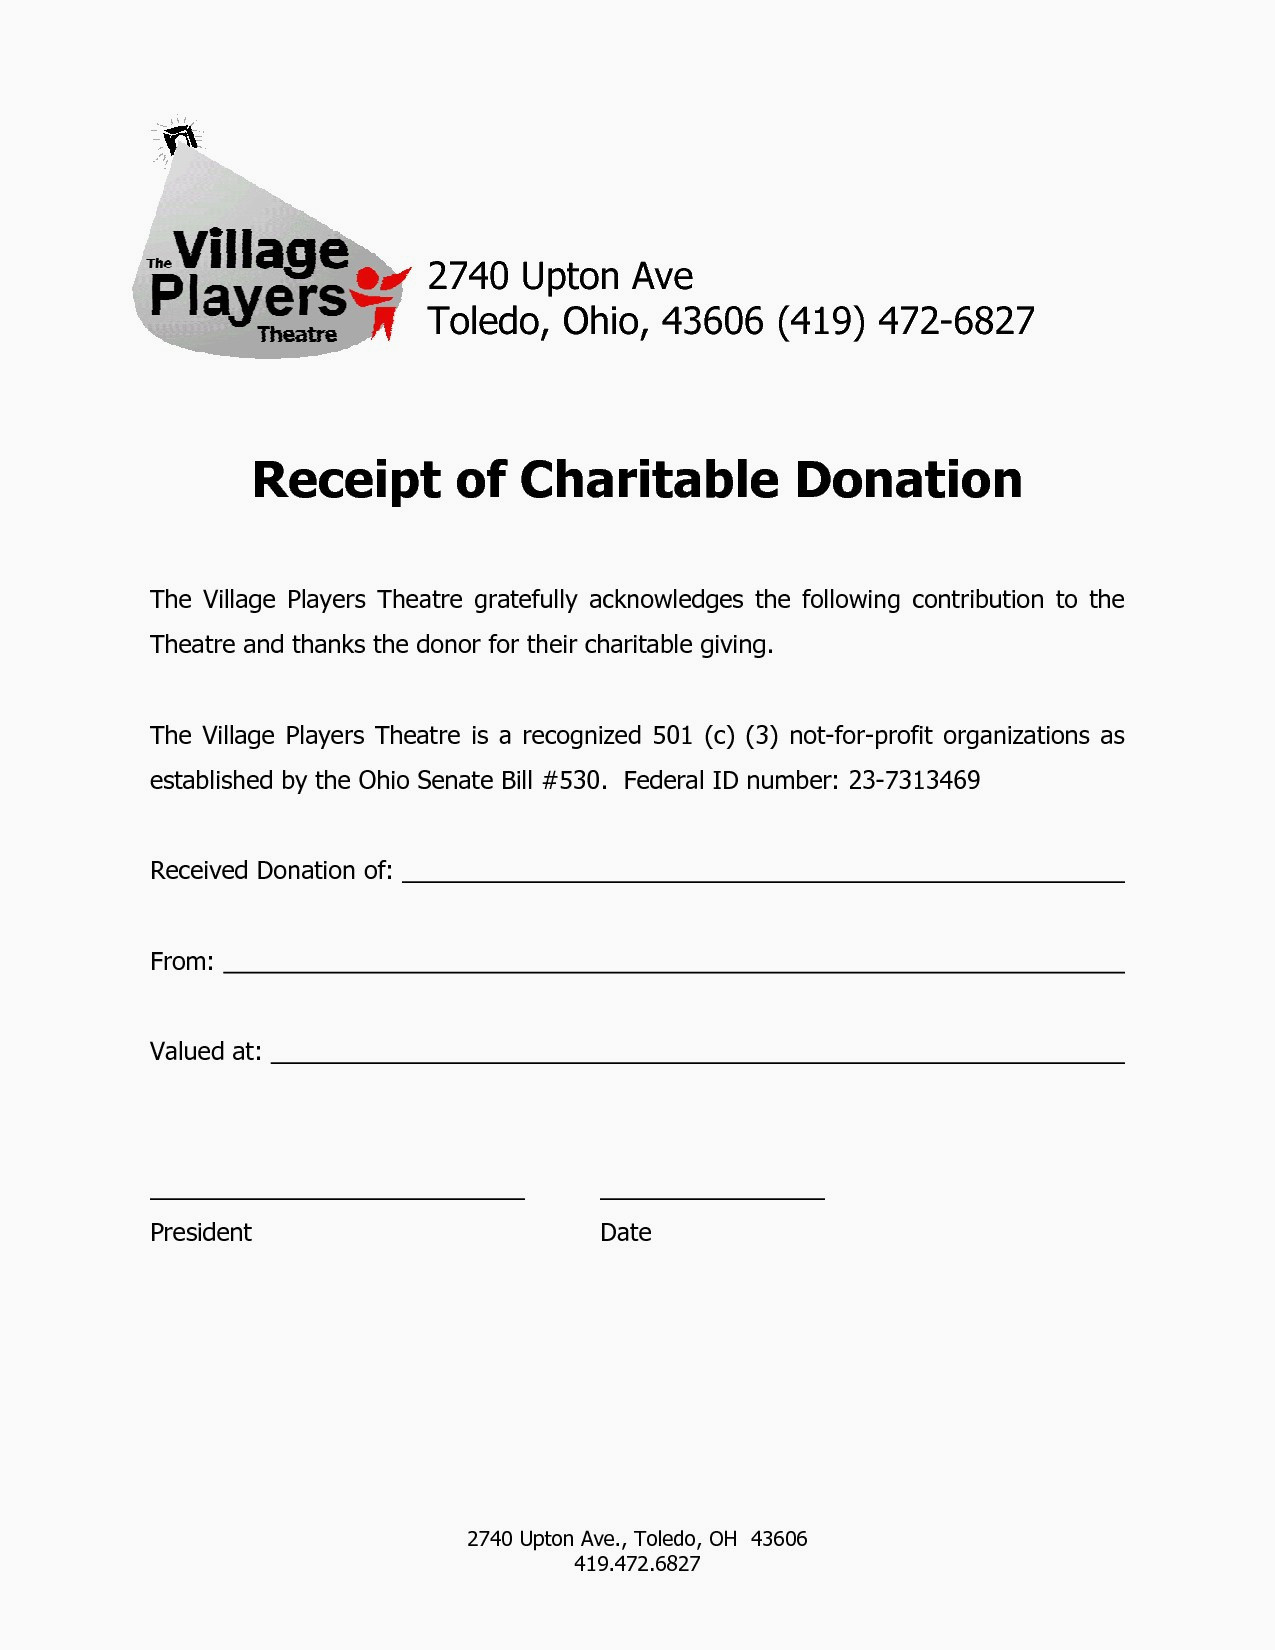 501c3 Tax Deductible Donation Letter 20 Practical Charitable Donation Receipt Letter Template